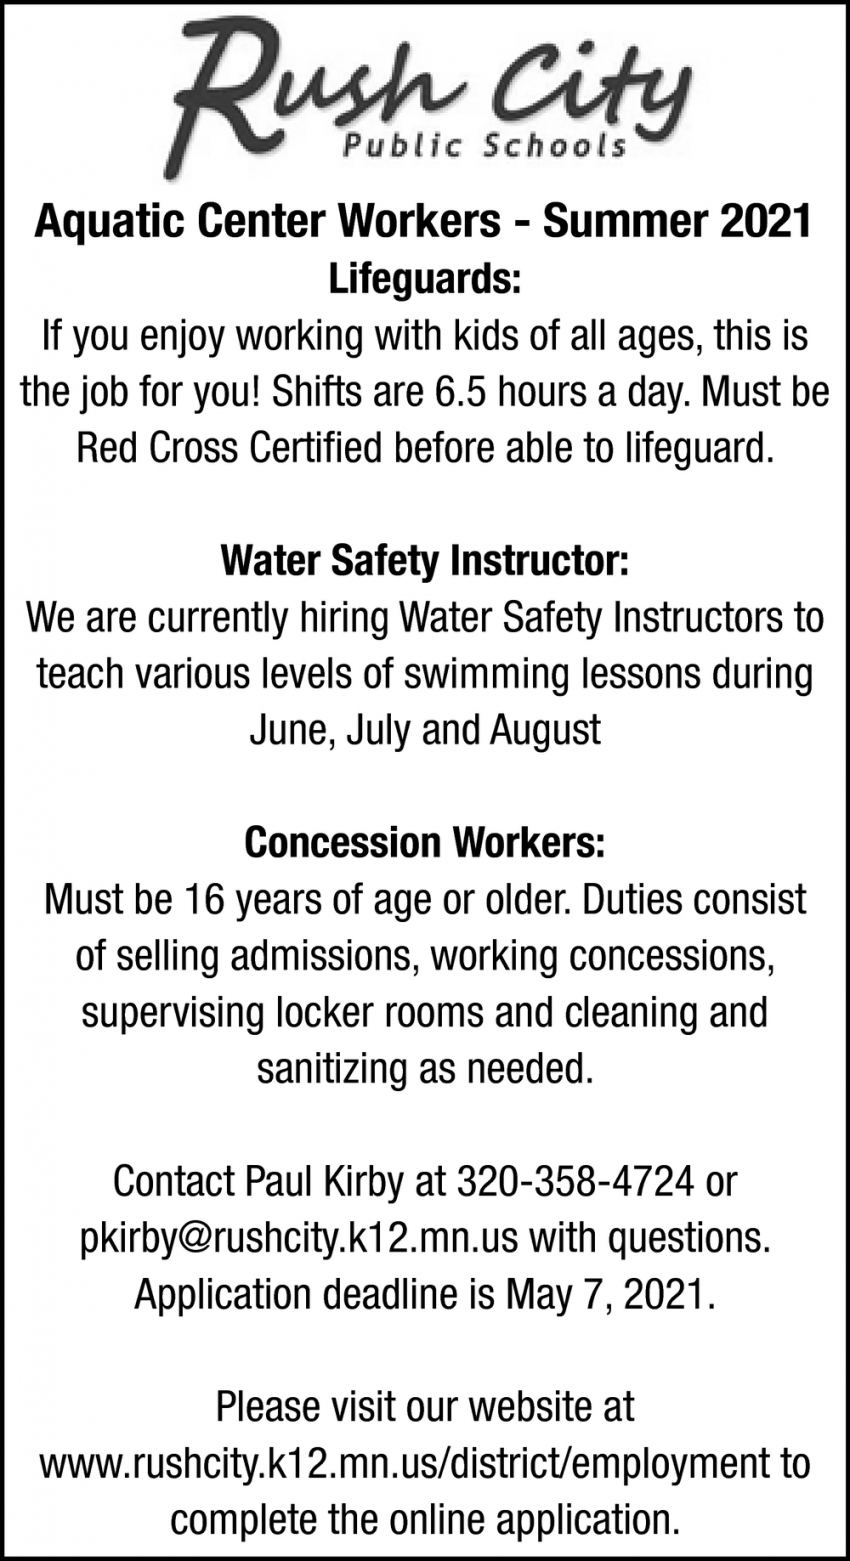 Aquatic Center Workers, Lifeguards, Water Safety Instructor, Concession Workers